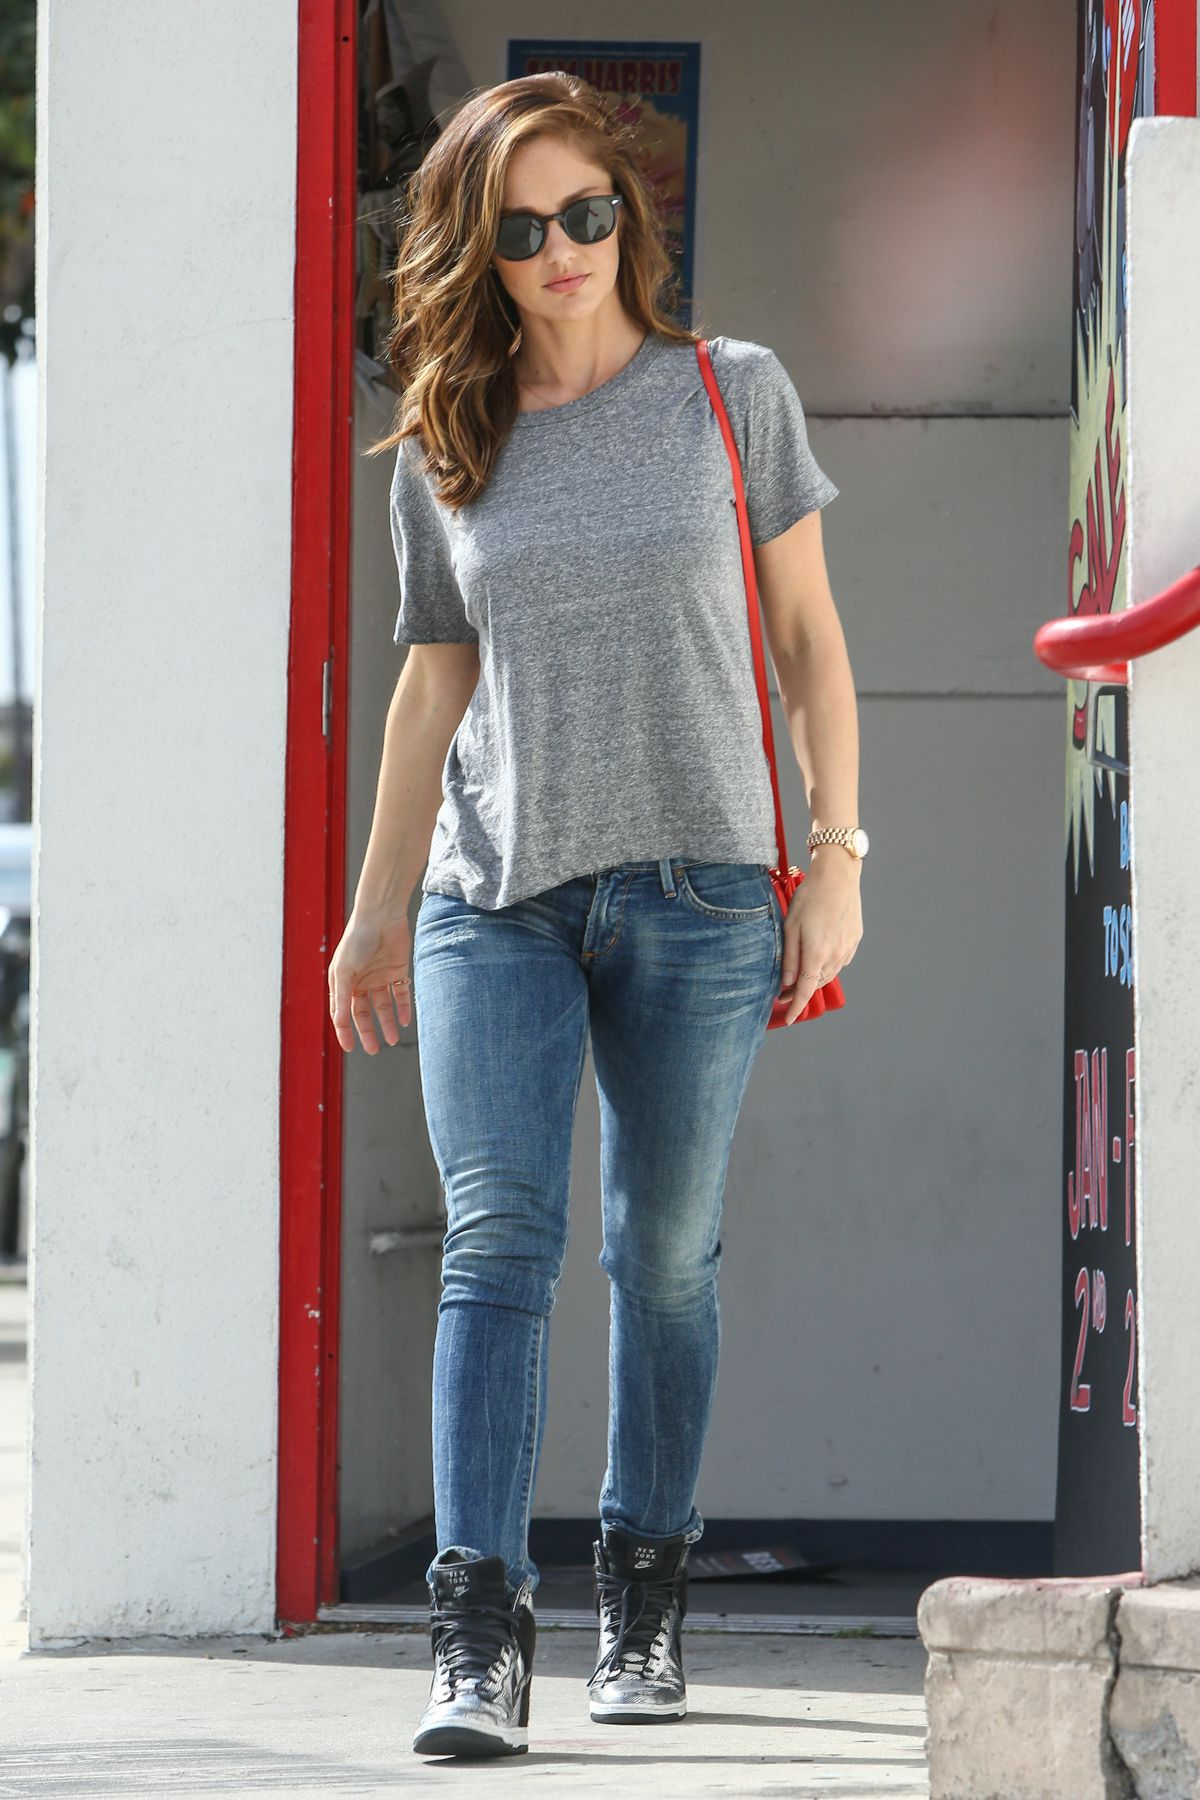 Minka Kelly In Jeans Out And About In Los Angeles on oscar party dogs